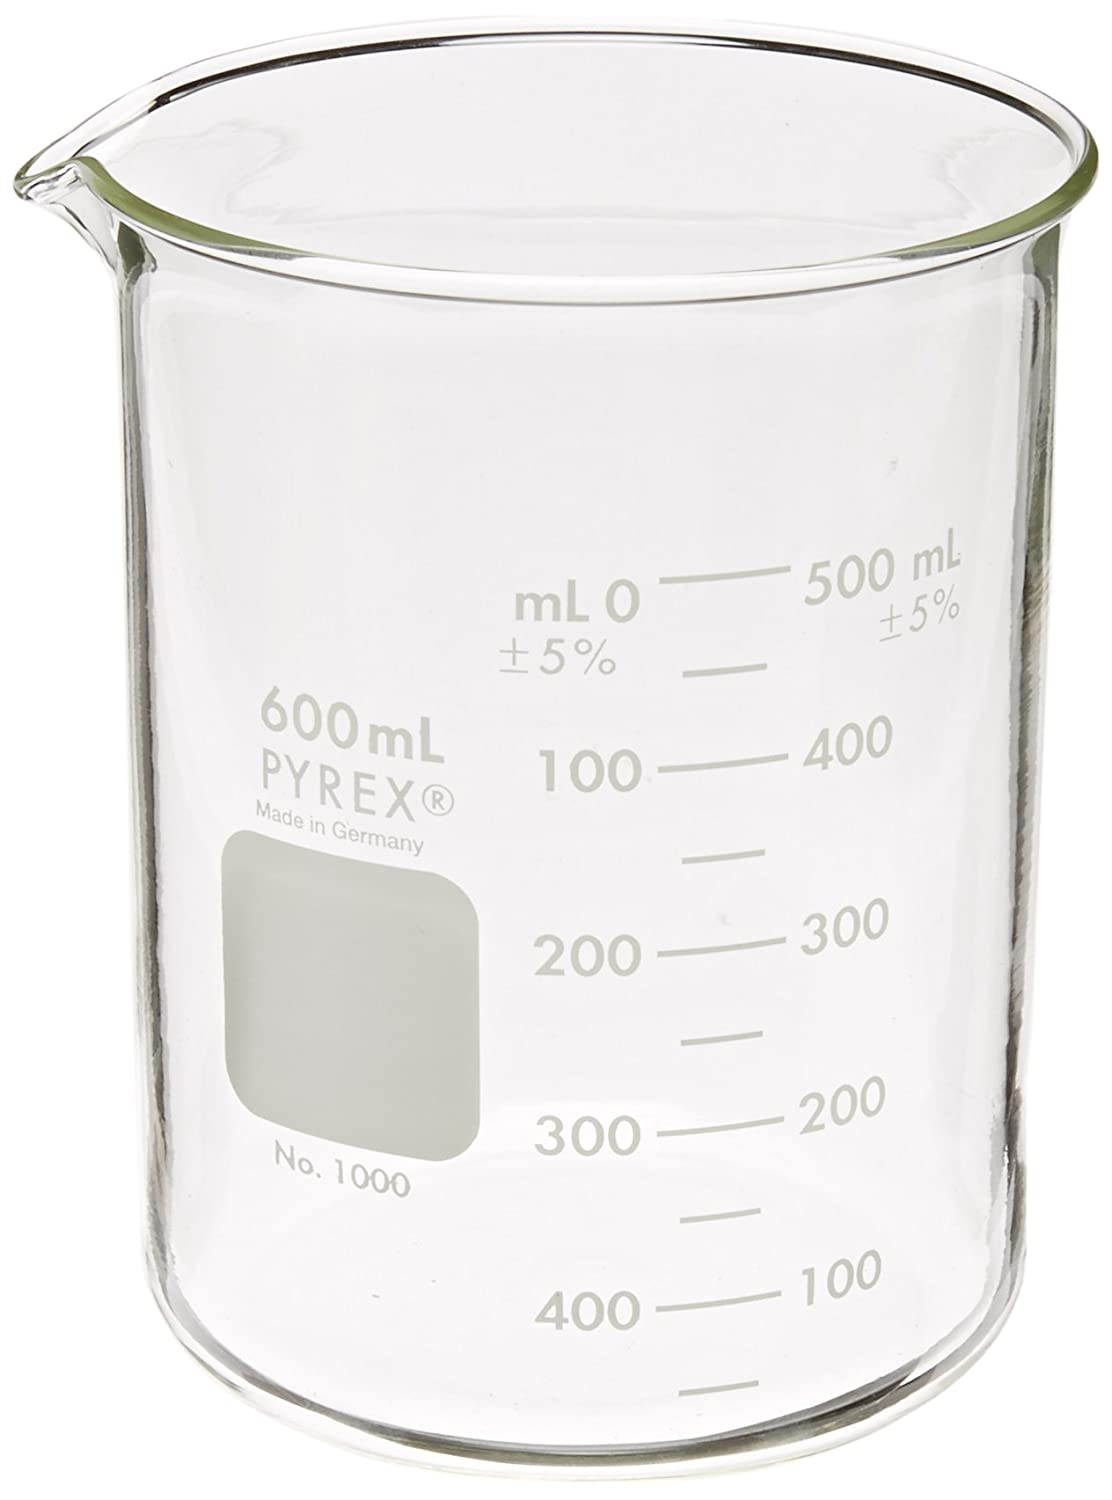 Corning Pyrex 1000-600 Glass 600mL Graduated Low Form Griffin Beaker, 50mL Graduation Interval, with Double Scale: Industrial & Scientific